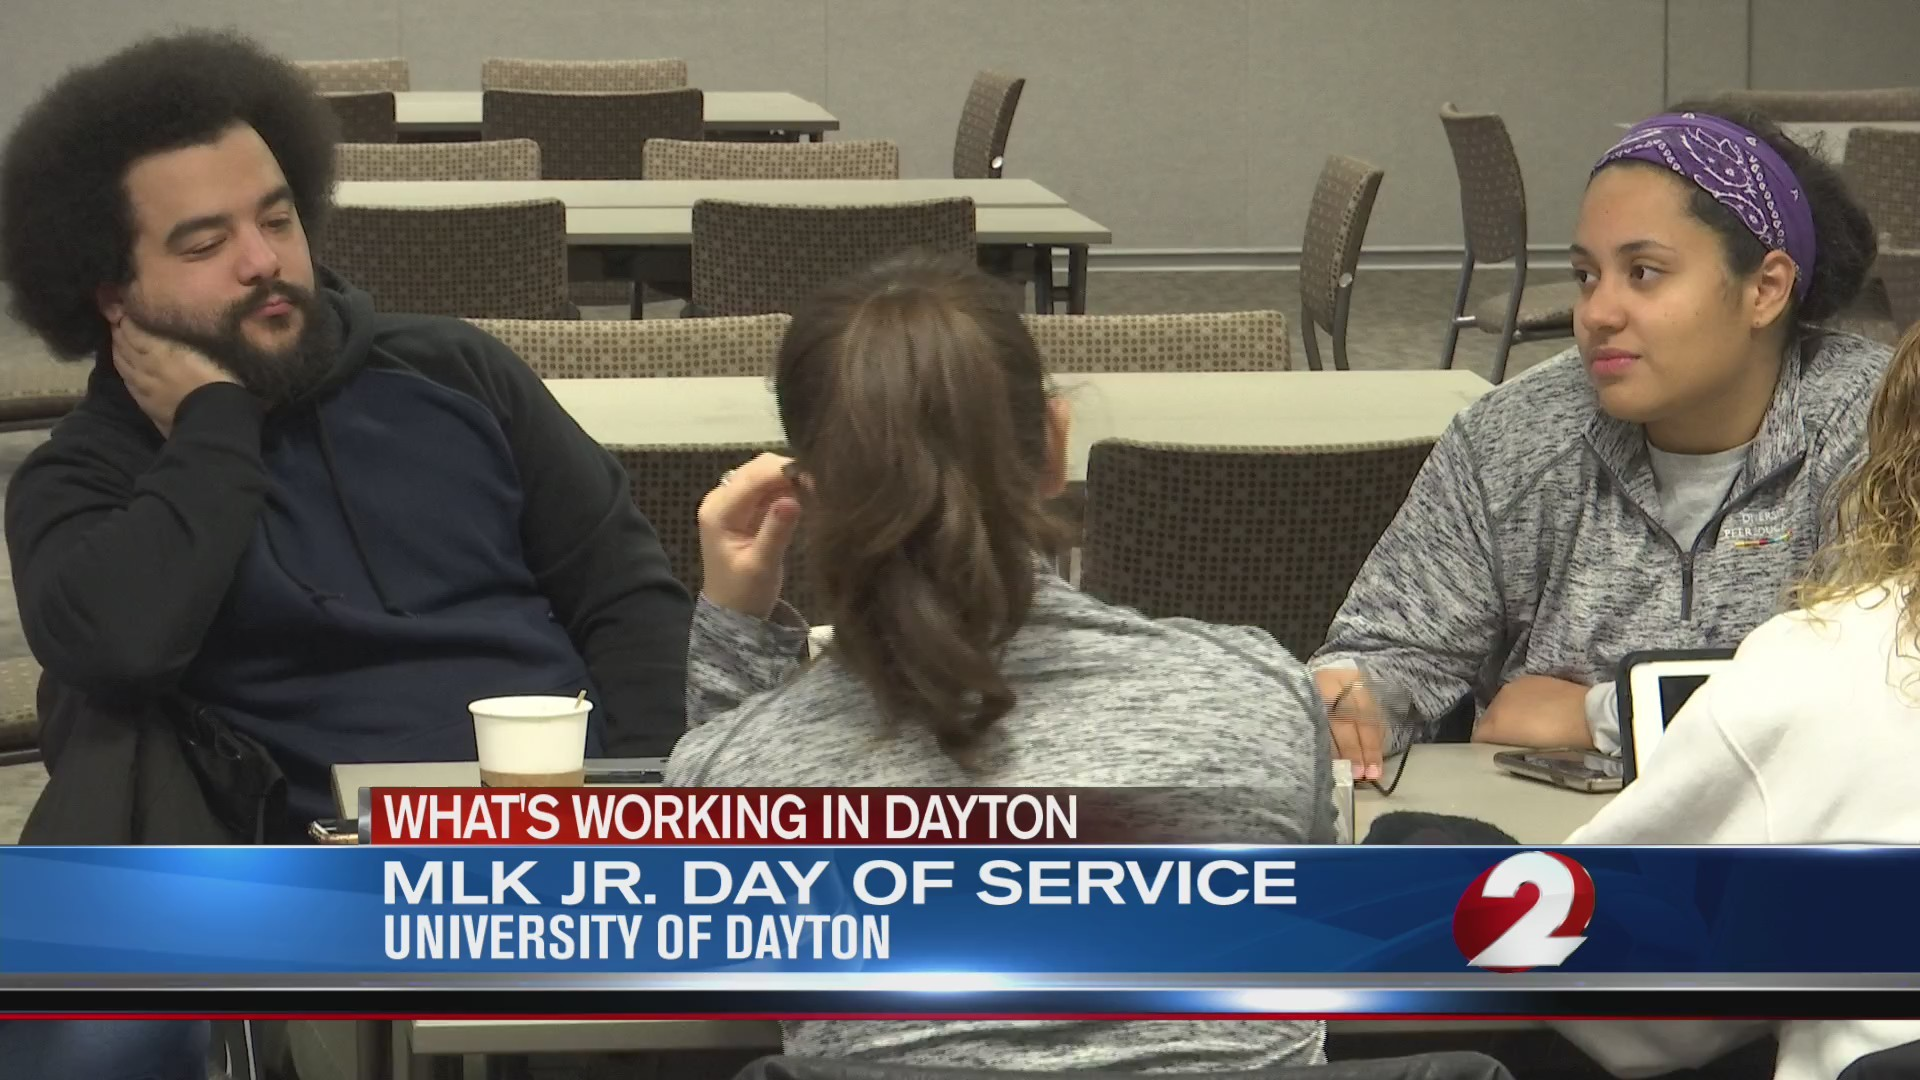 MLK Day of Service at University of Dayton